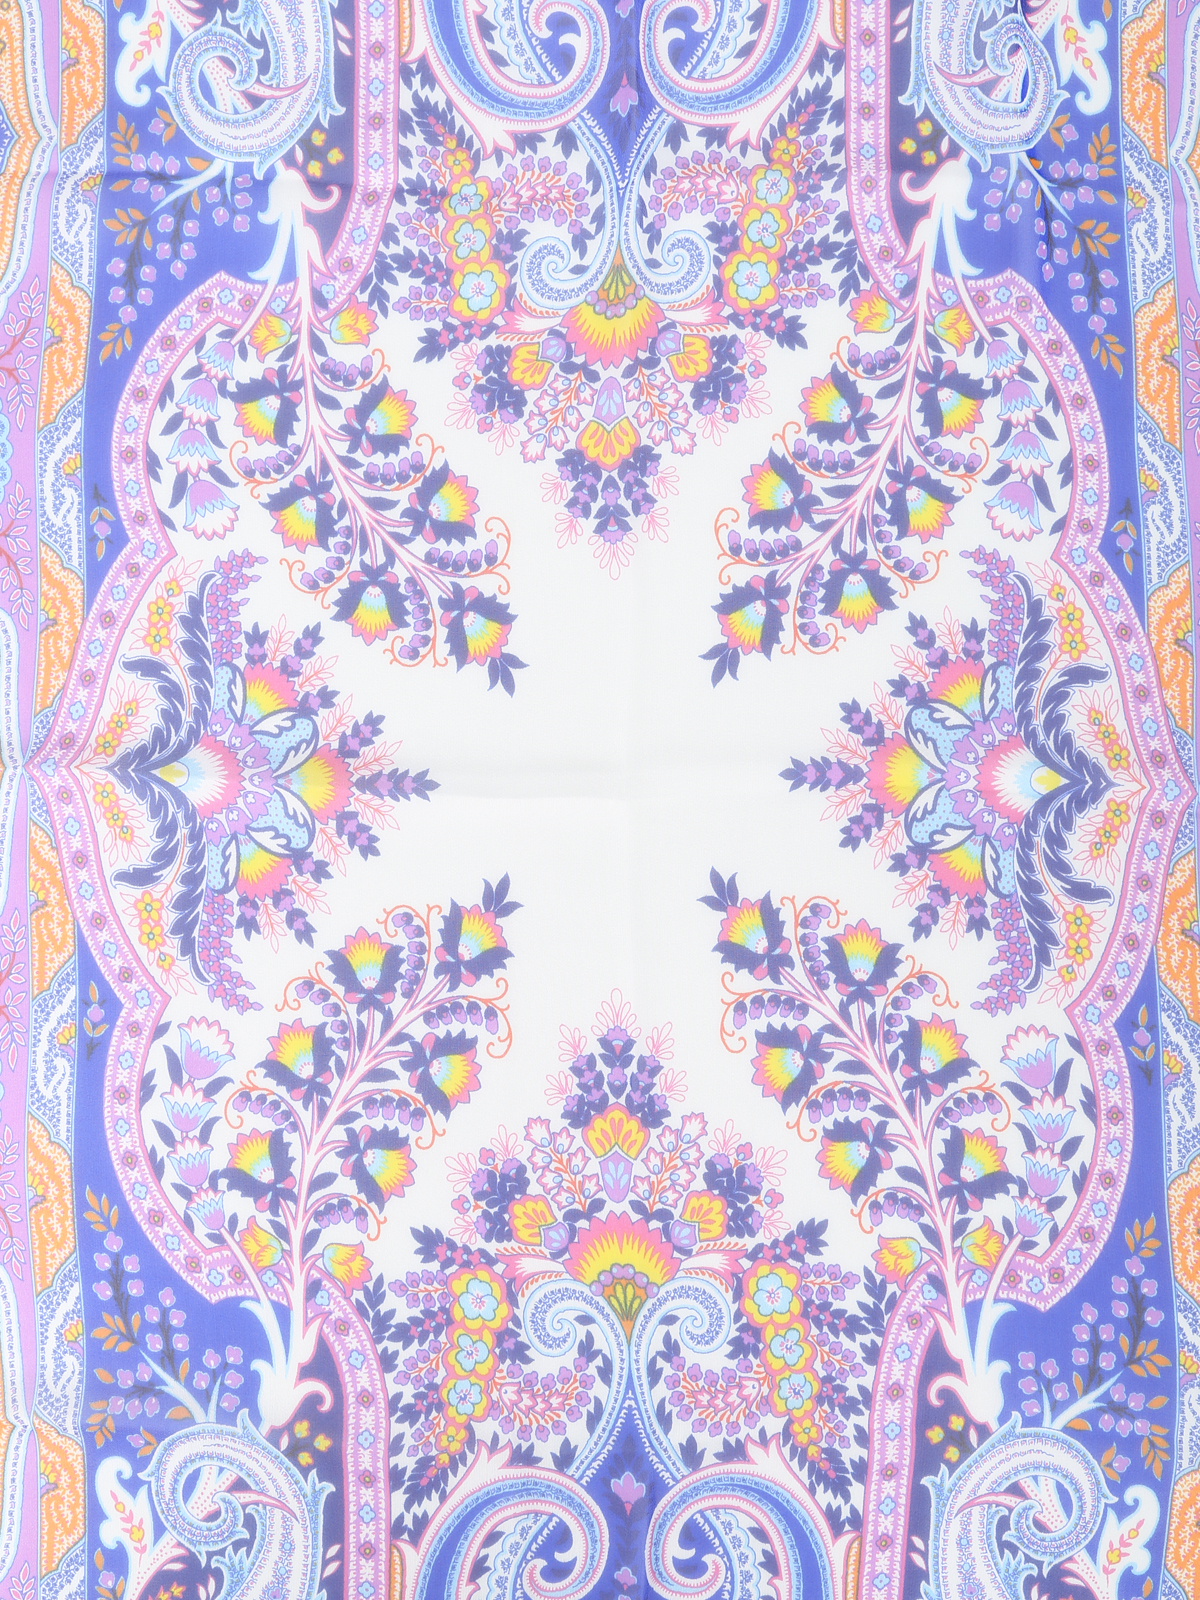 Paisley pattern silk scarf by Etro